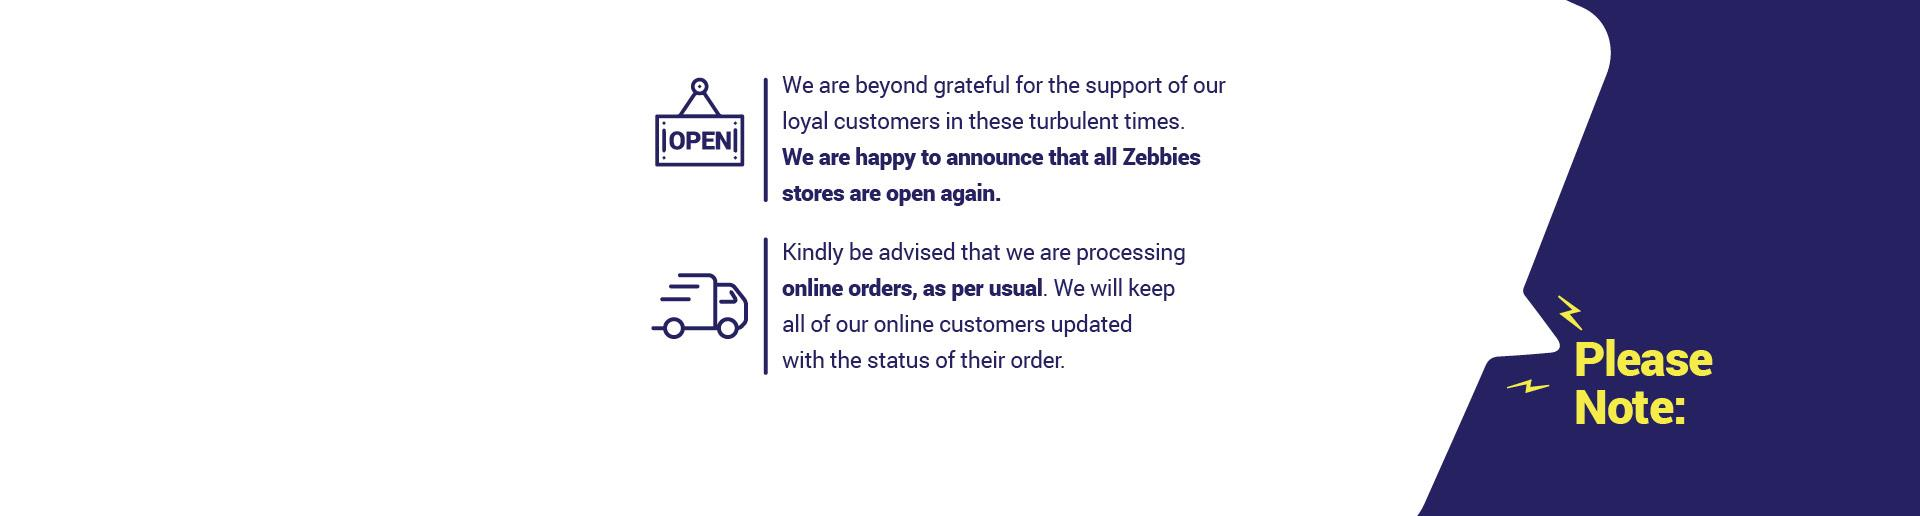 Zebbies home page banner